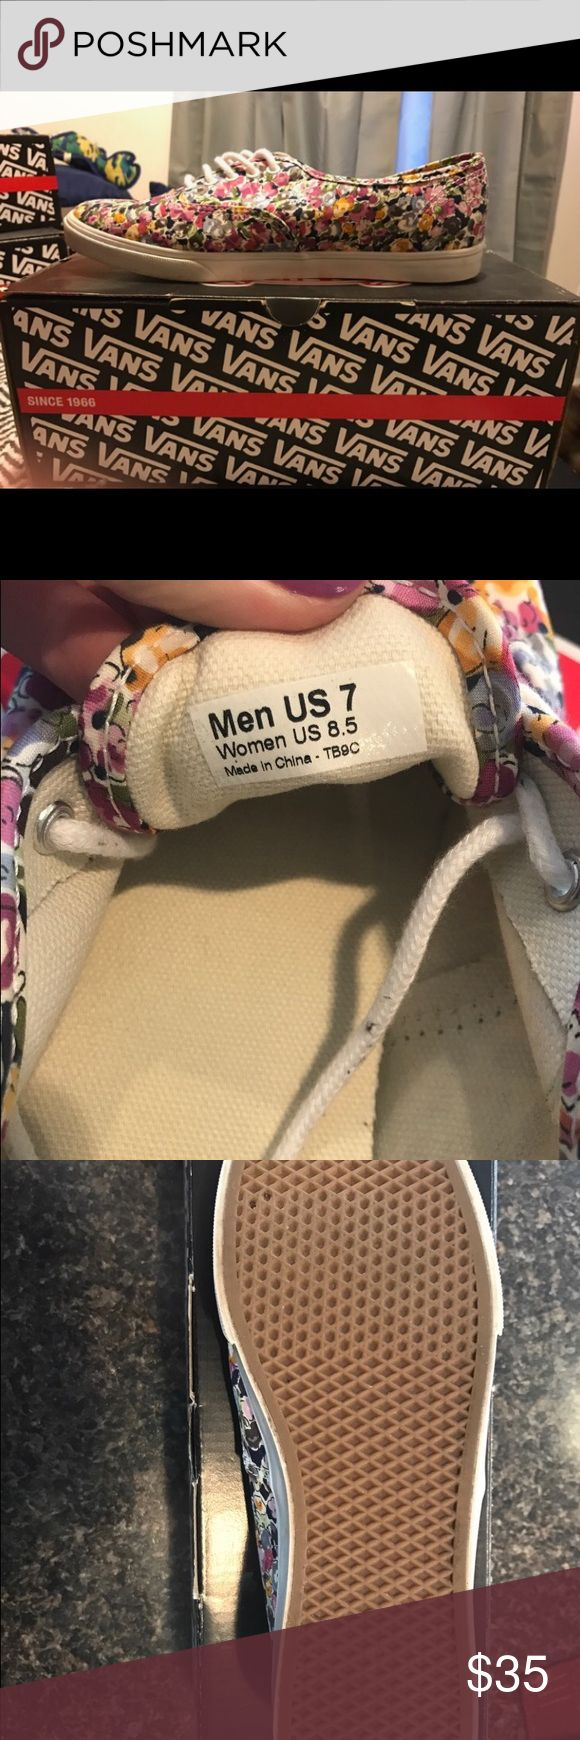 Vans Lo Pro Flowers.  Size 8.5 Bring on Spring with these Vans in a pretty floral print.  Only worn a few times, the uppers are in excellent condition with minimal wear on the soles. Vans Shoes Sneakers